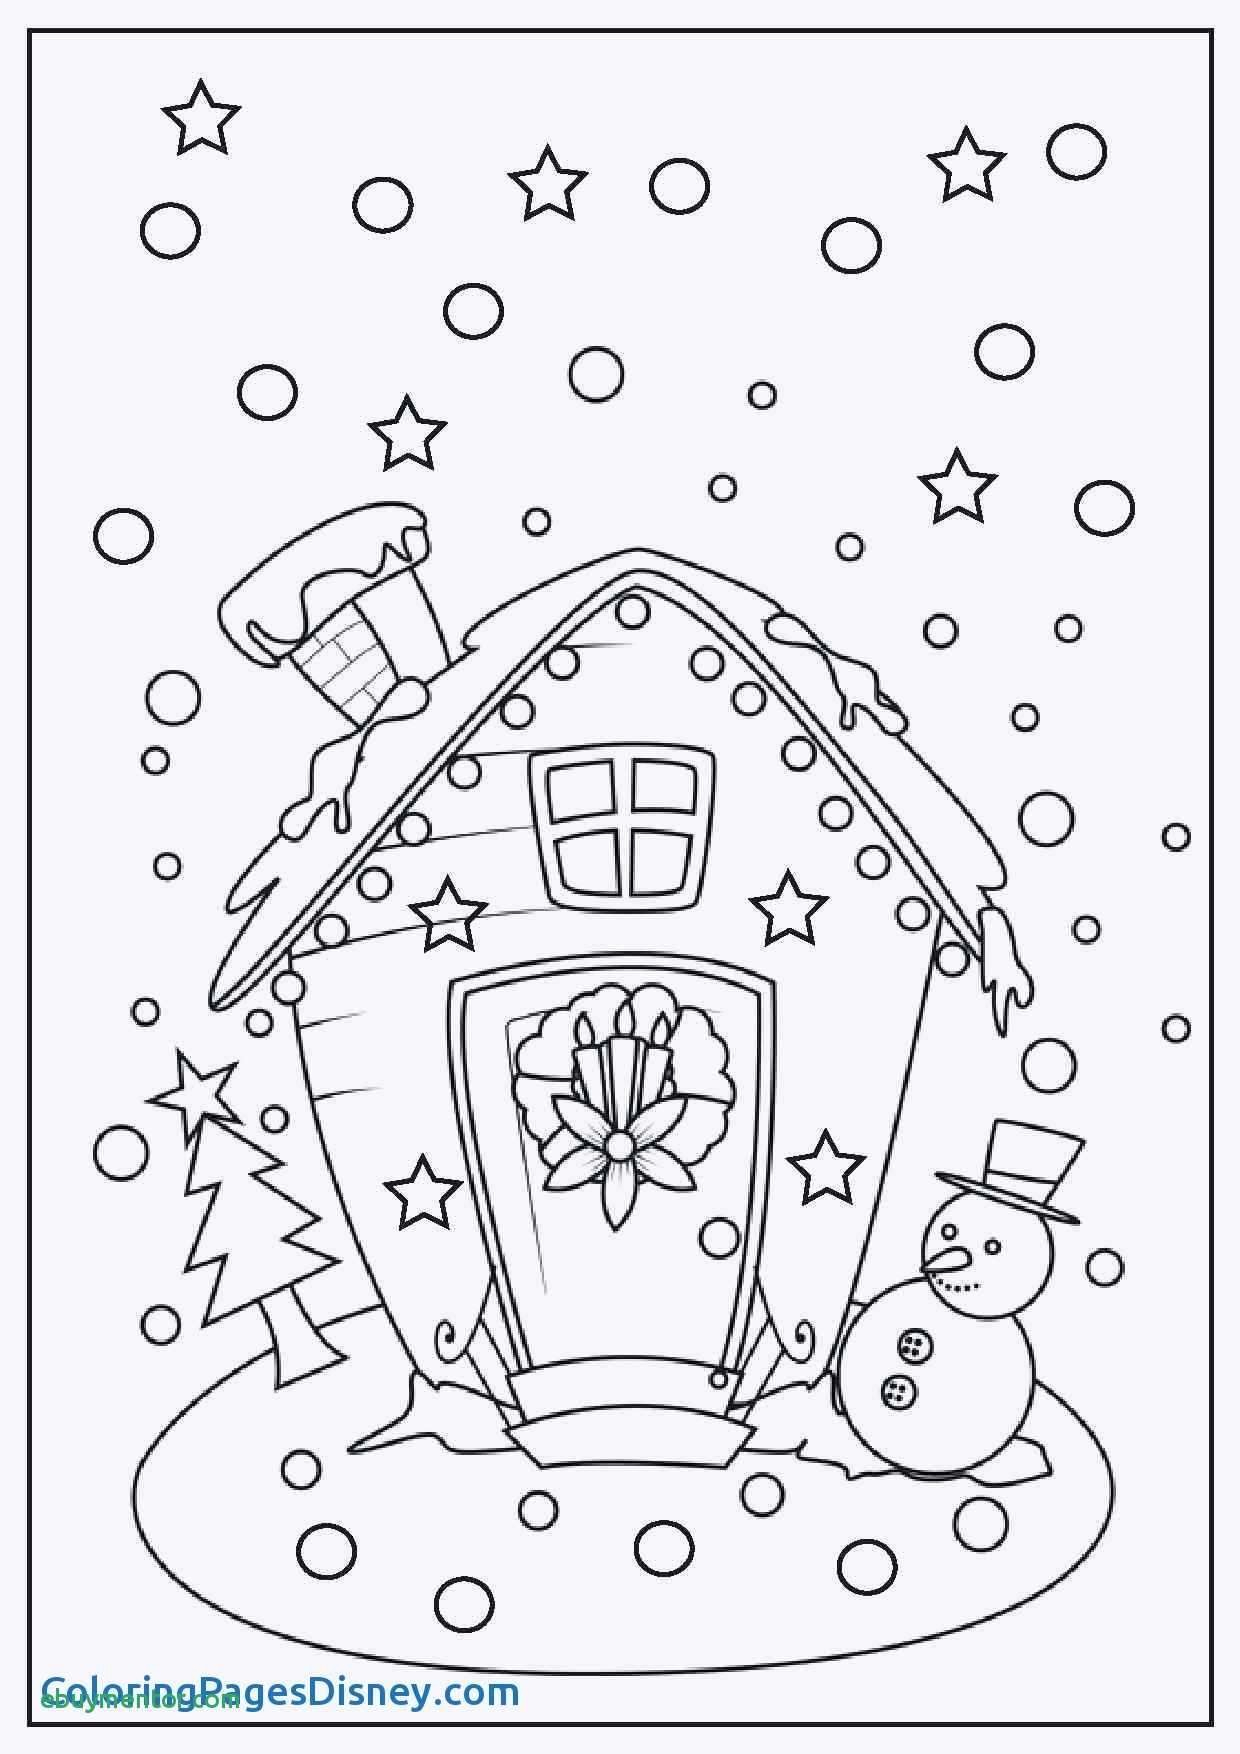 Puzzle Coloring Pages  Collection 2d - Save it to your computer